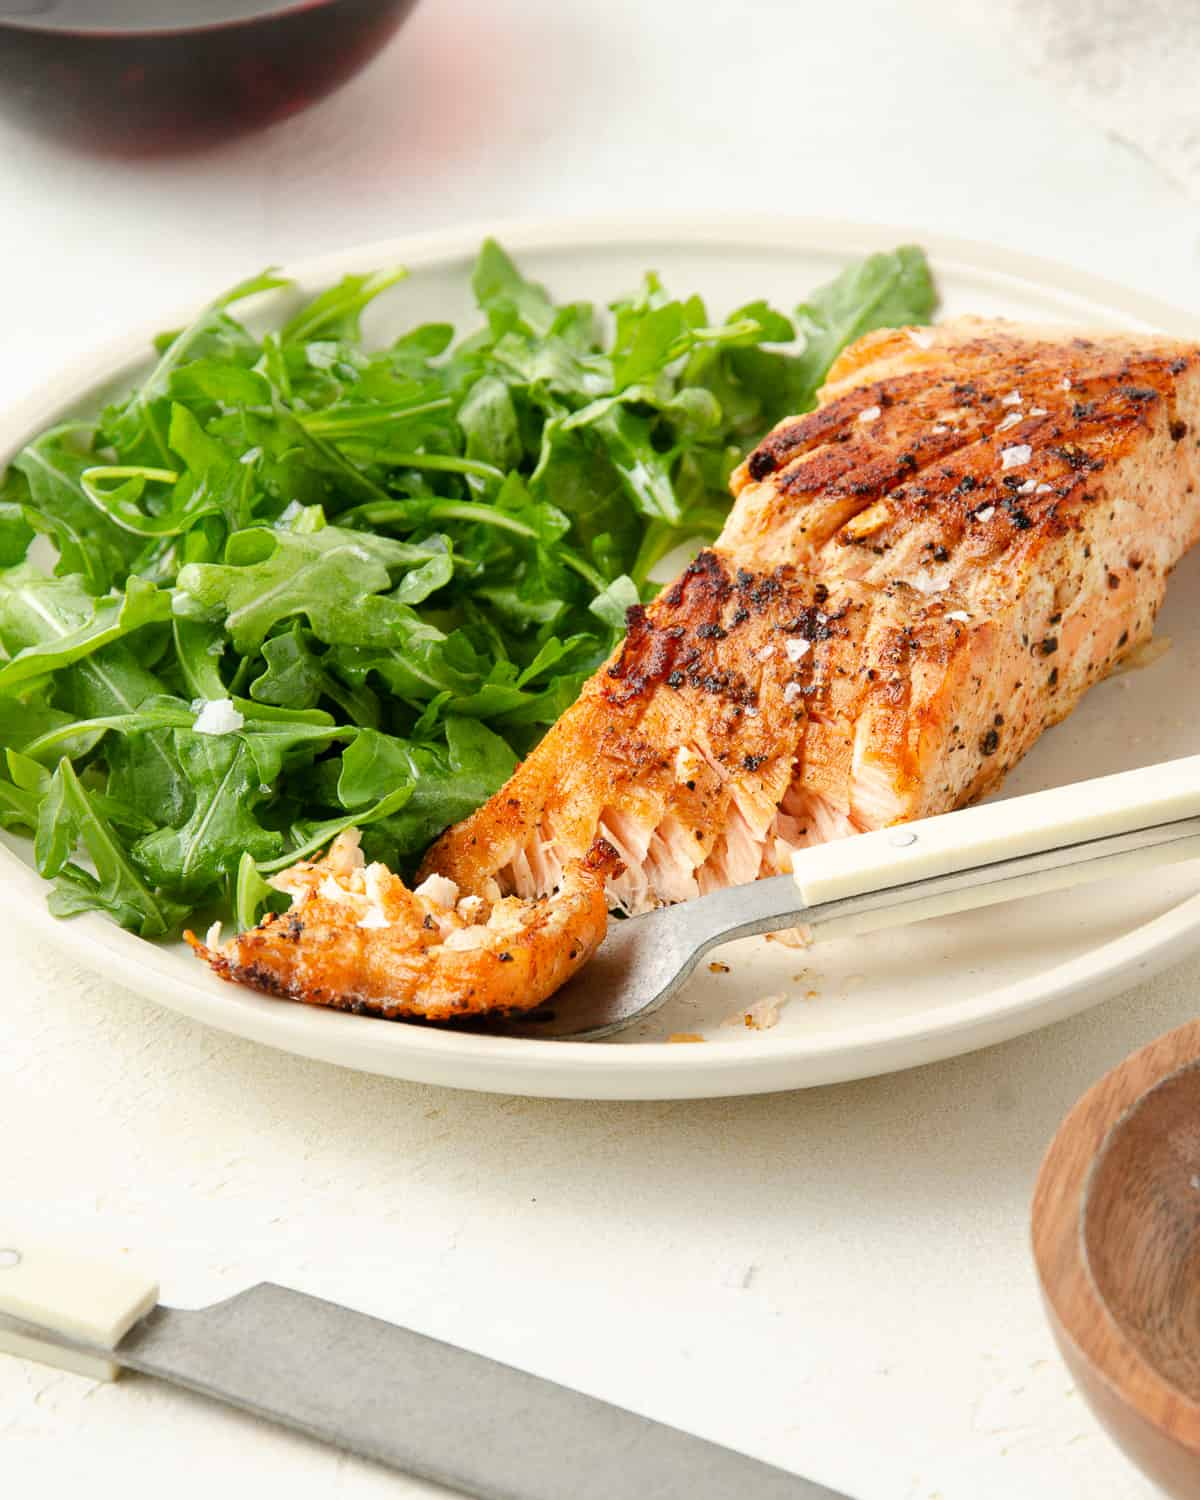 An angle of a salmon filet on a plate with a fork piercing the filet.